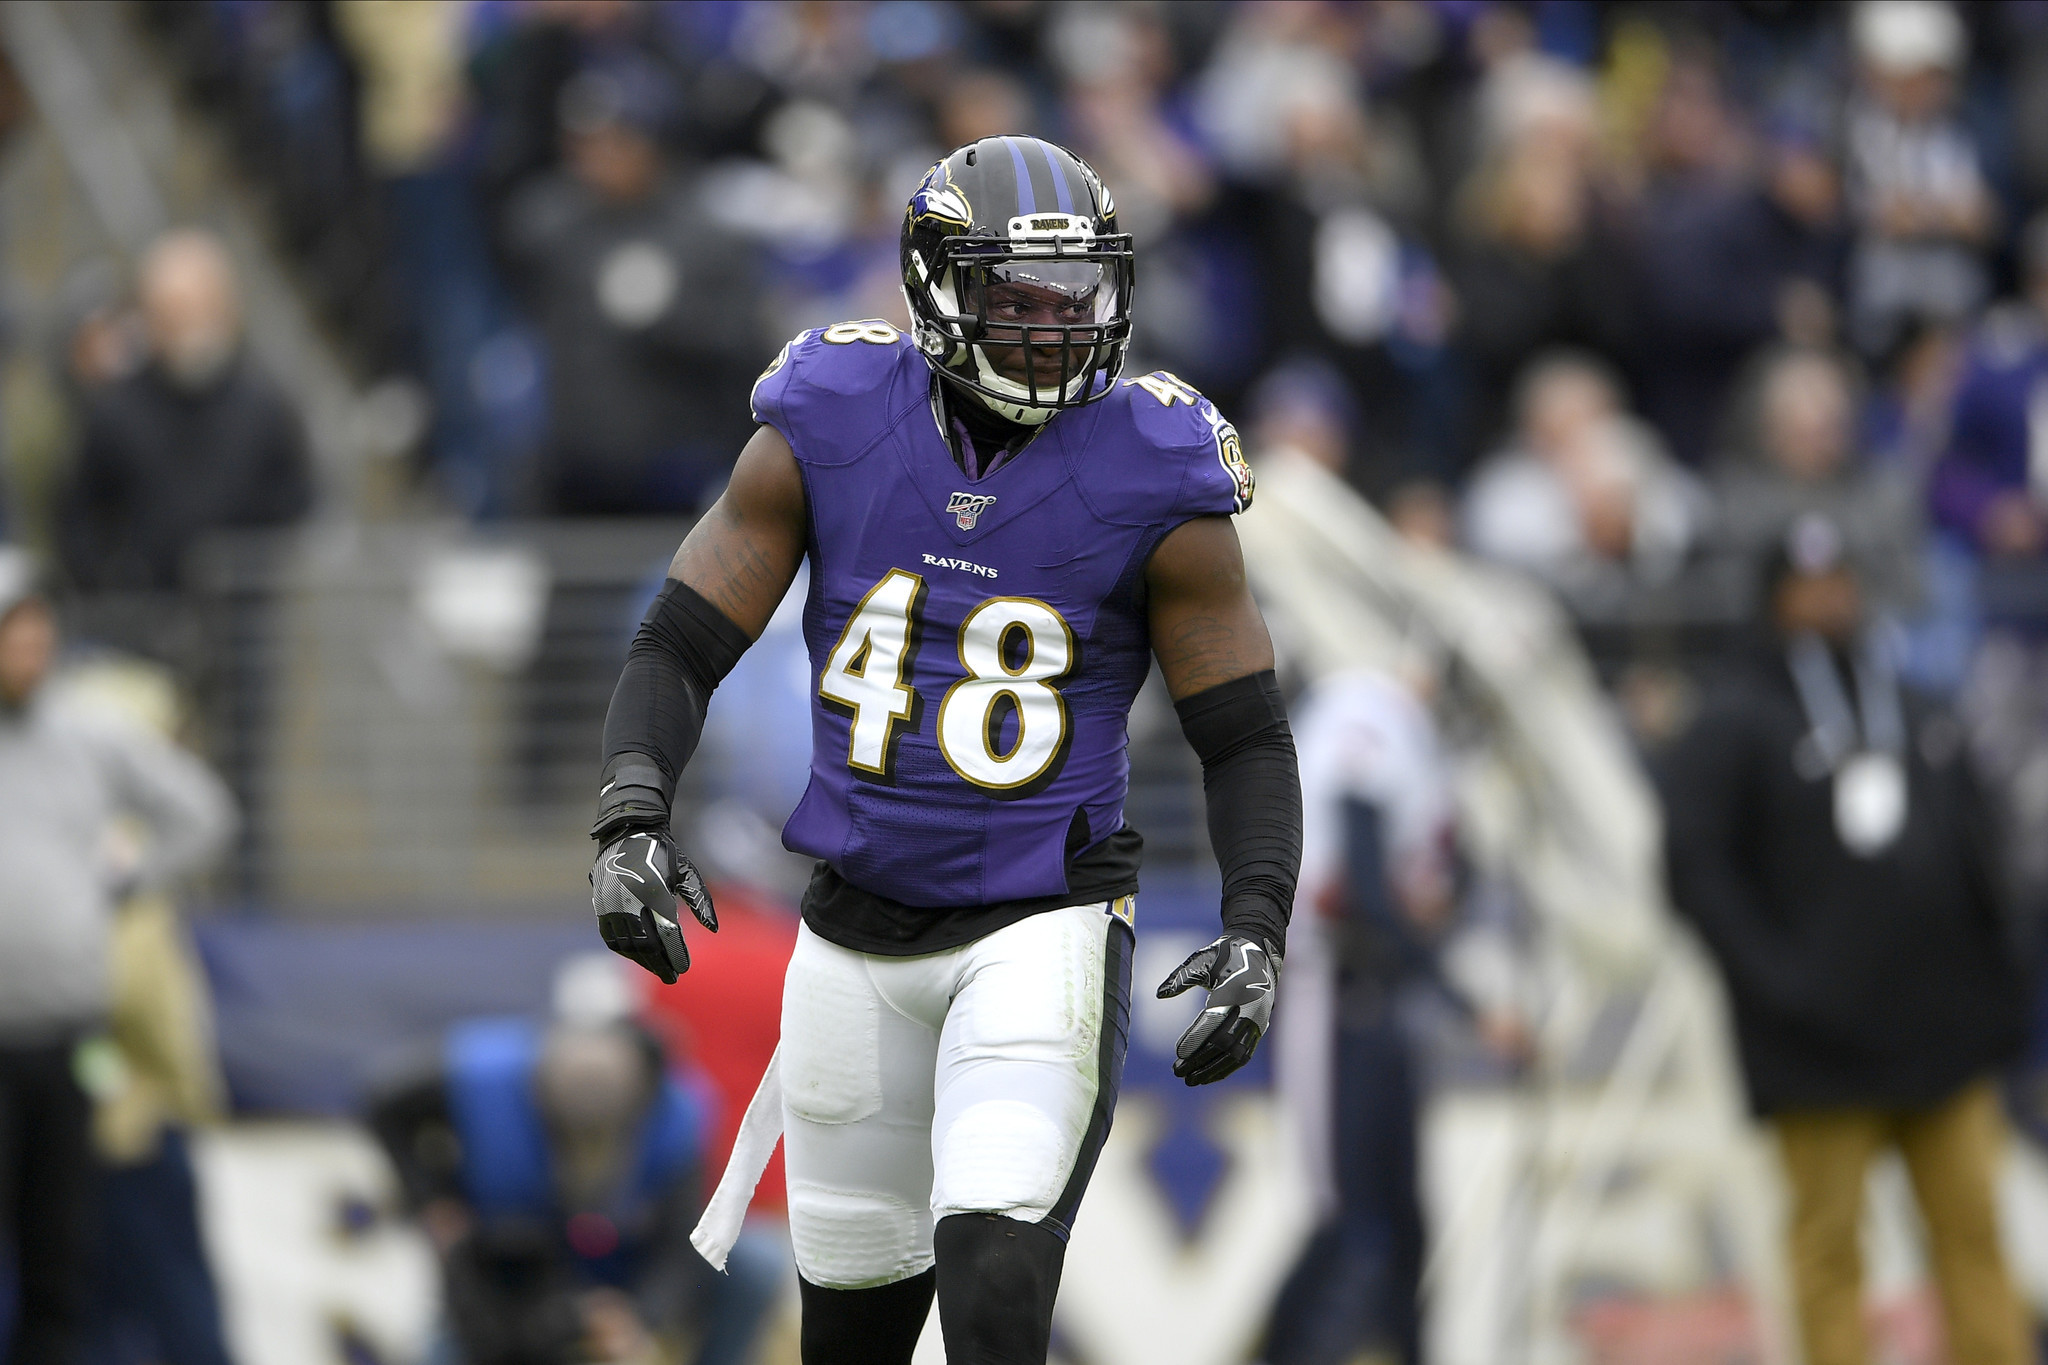 Jets, former Ravens linebacker Patrick Onwuasor agree to one-year deal: source